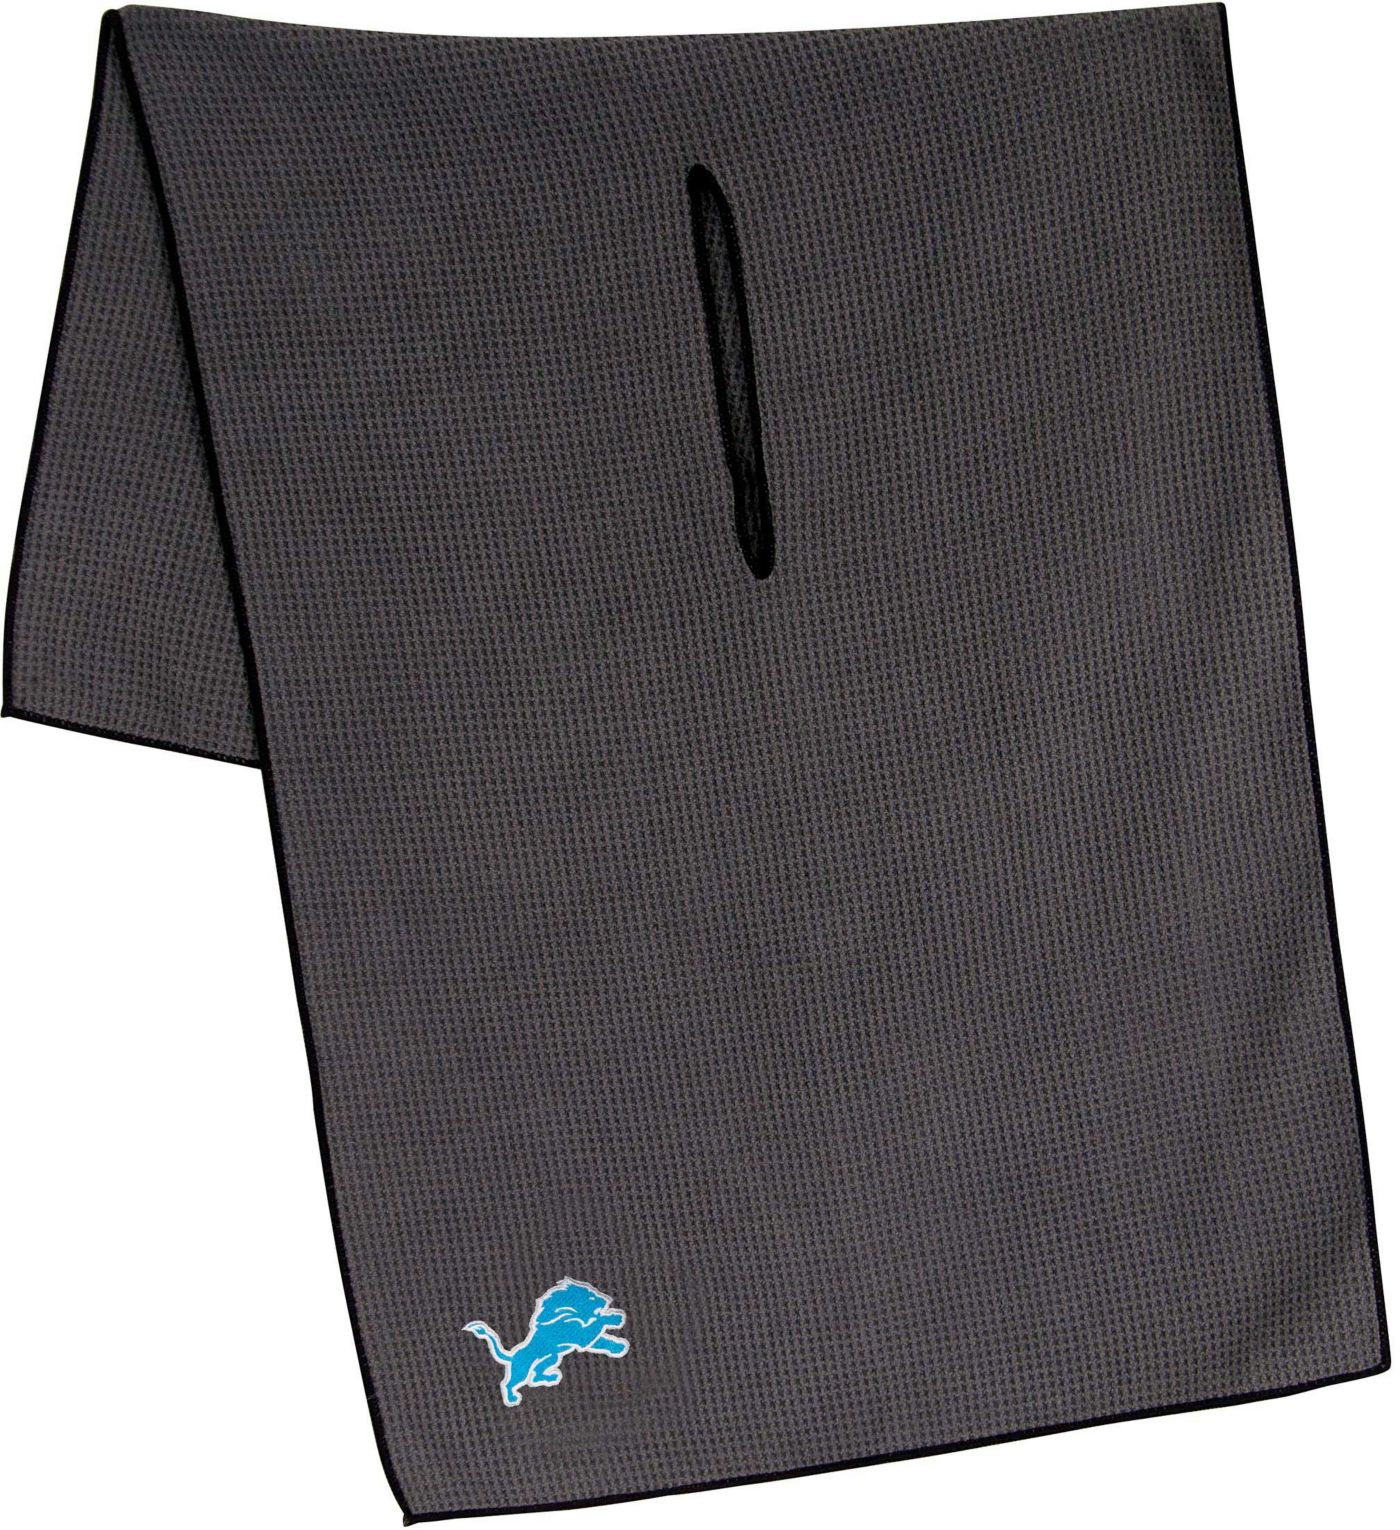 "Team Effort Detroit Lions 19"" x 41"" Microfiber Golf Towel"